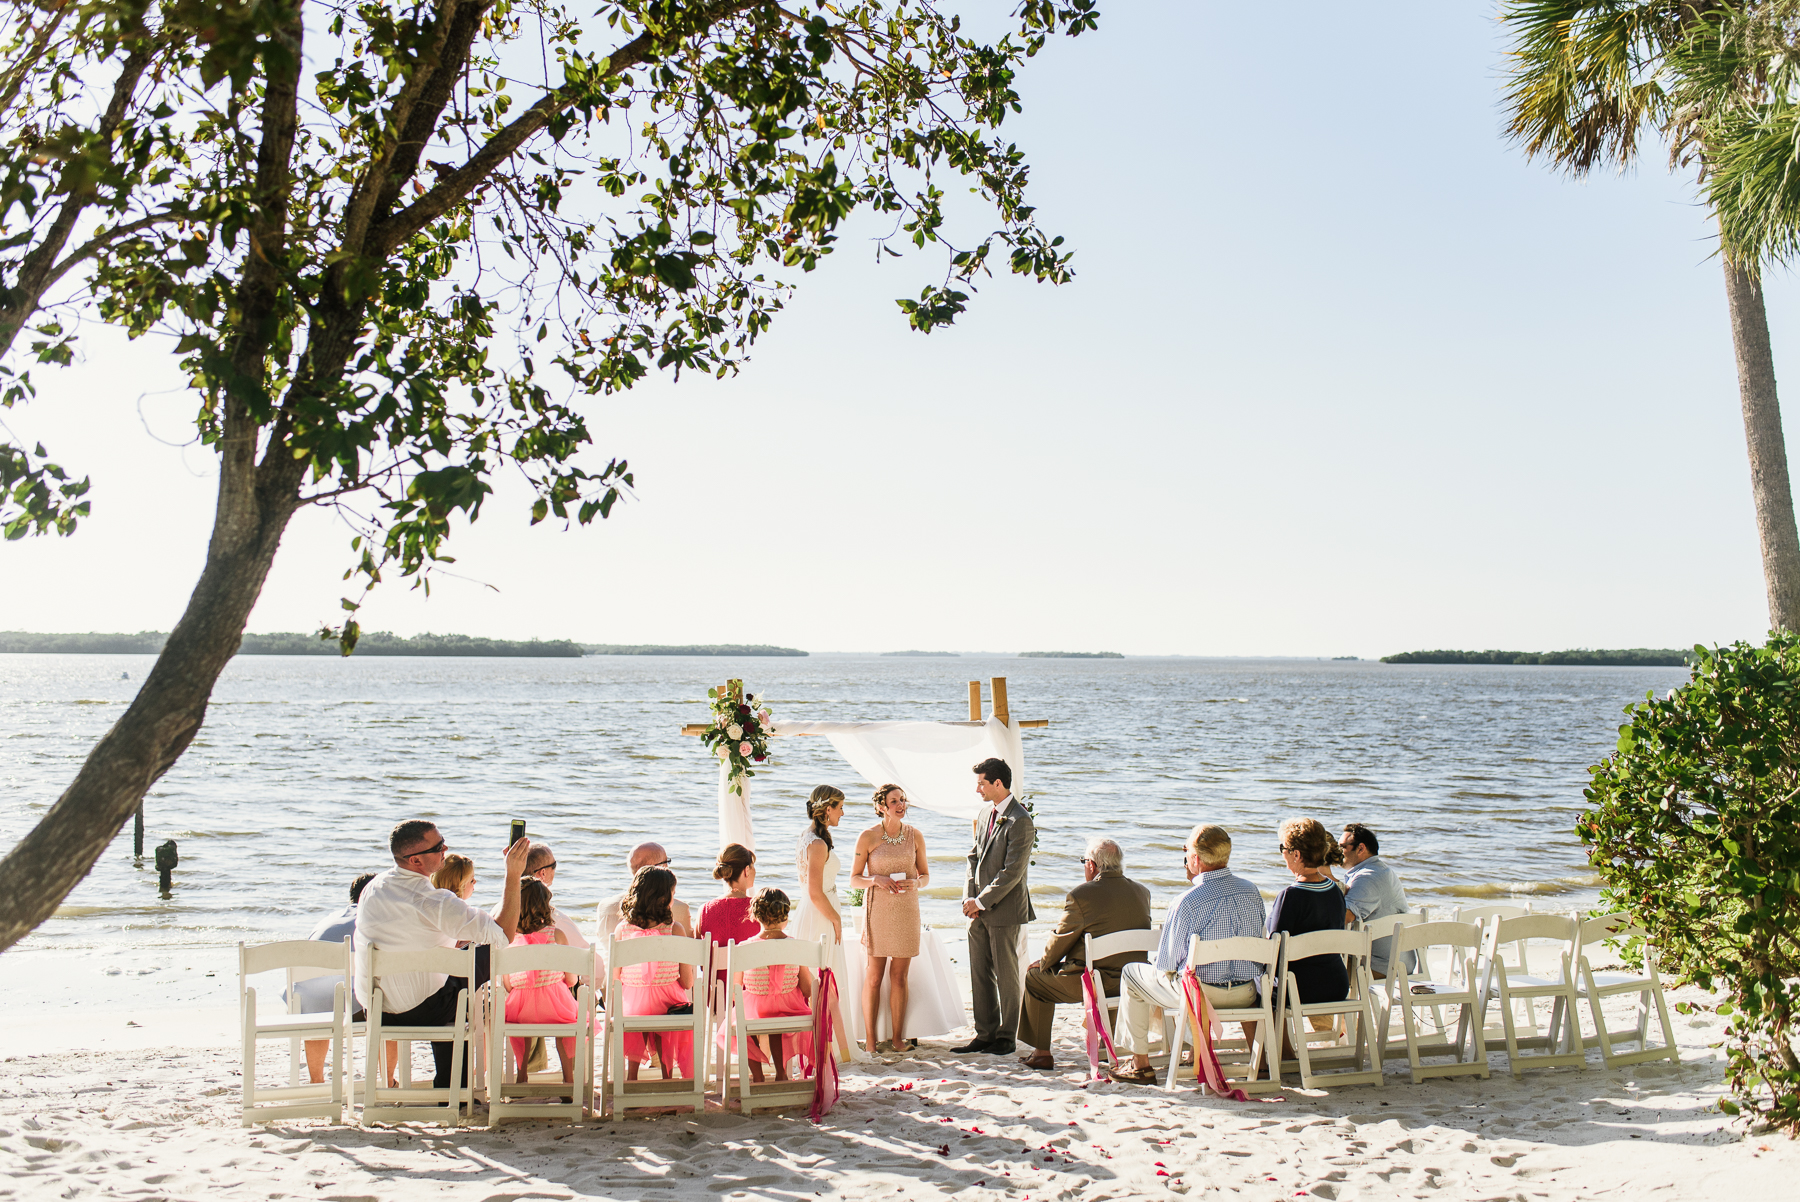 ft. meyers florida beach ceremony wedding